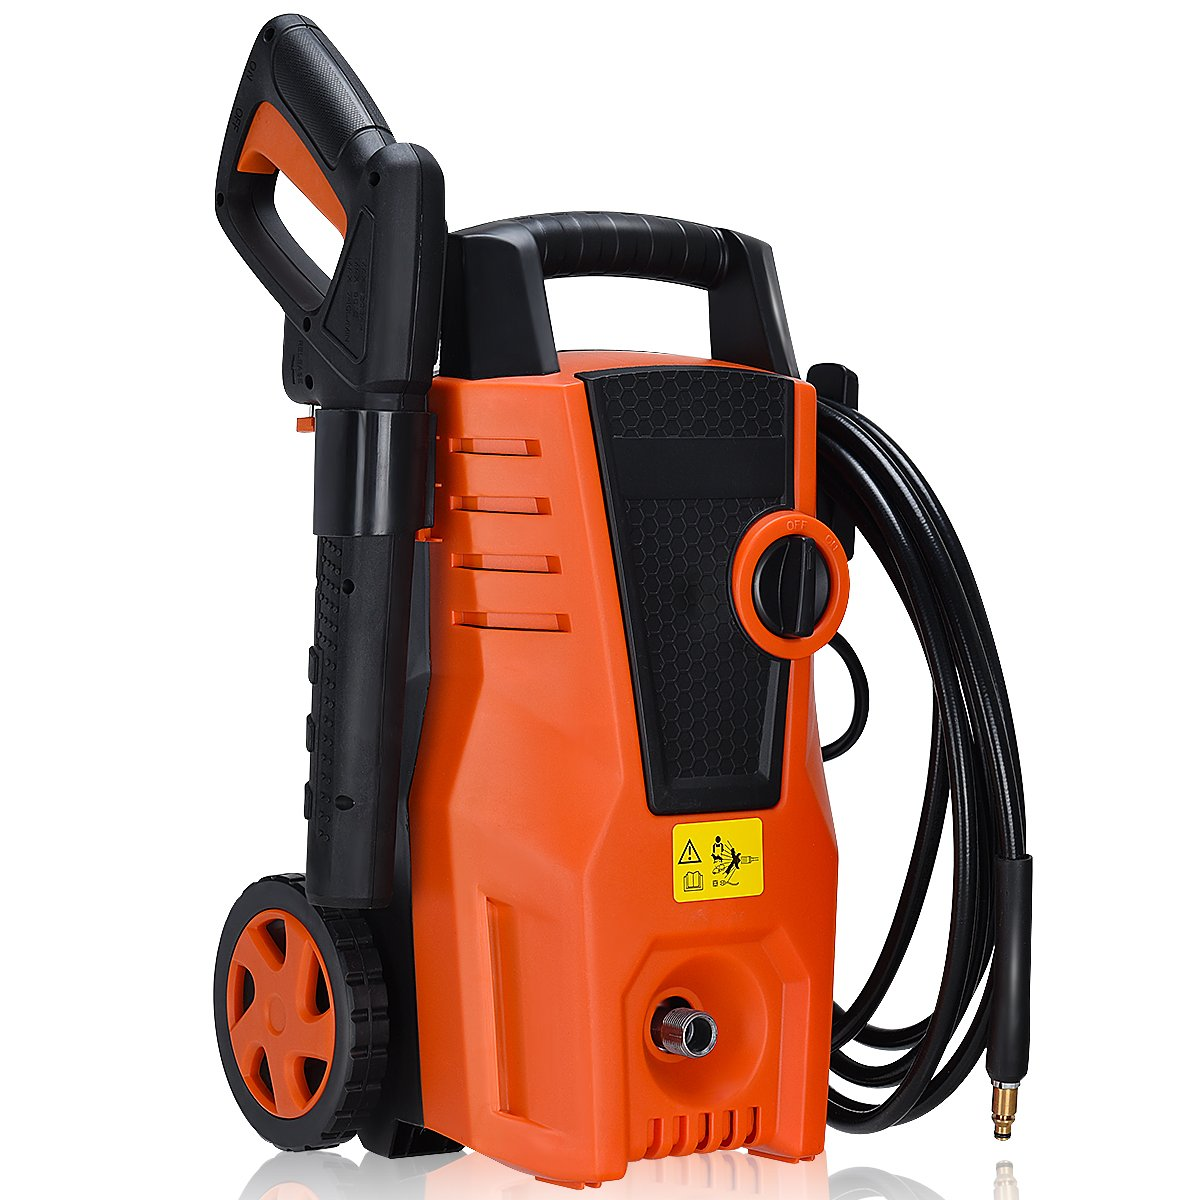 Goplus Electric High Pressure Washer 1400PSI Power Pressure Washer Machine with Hose Reel & Soap Foam Cannon